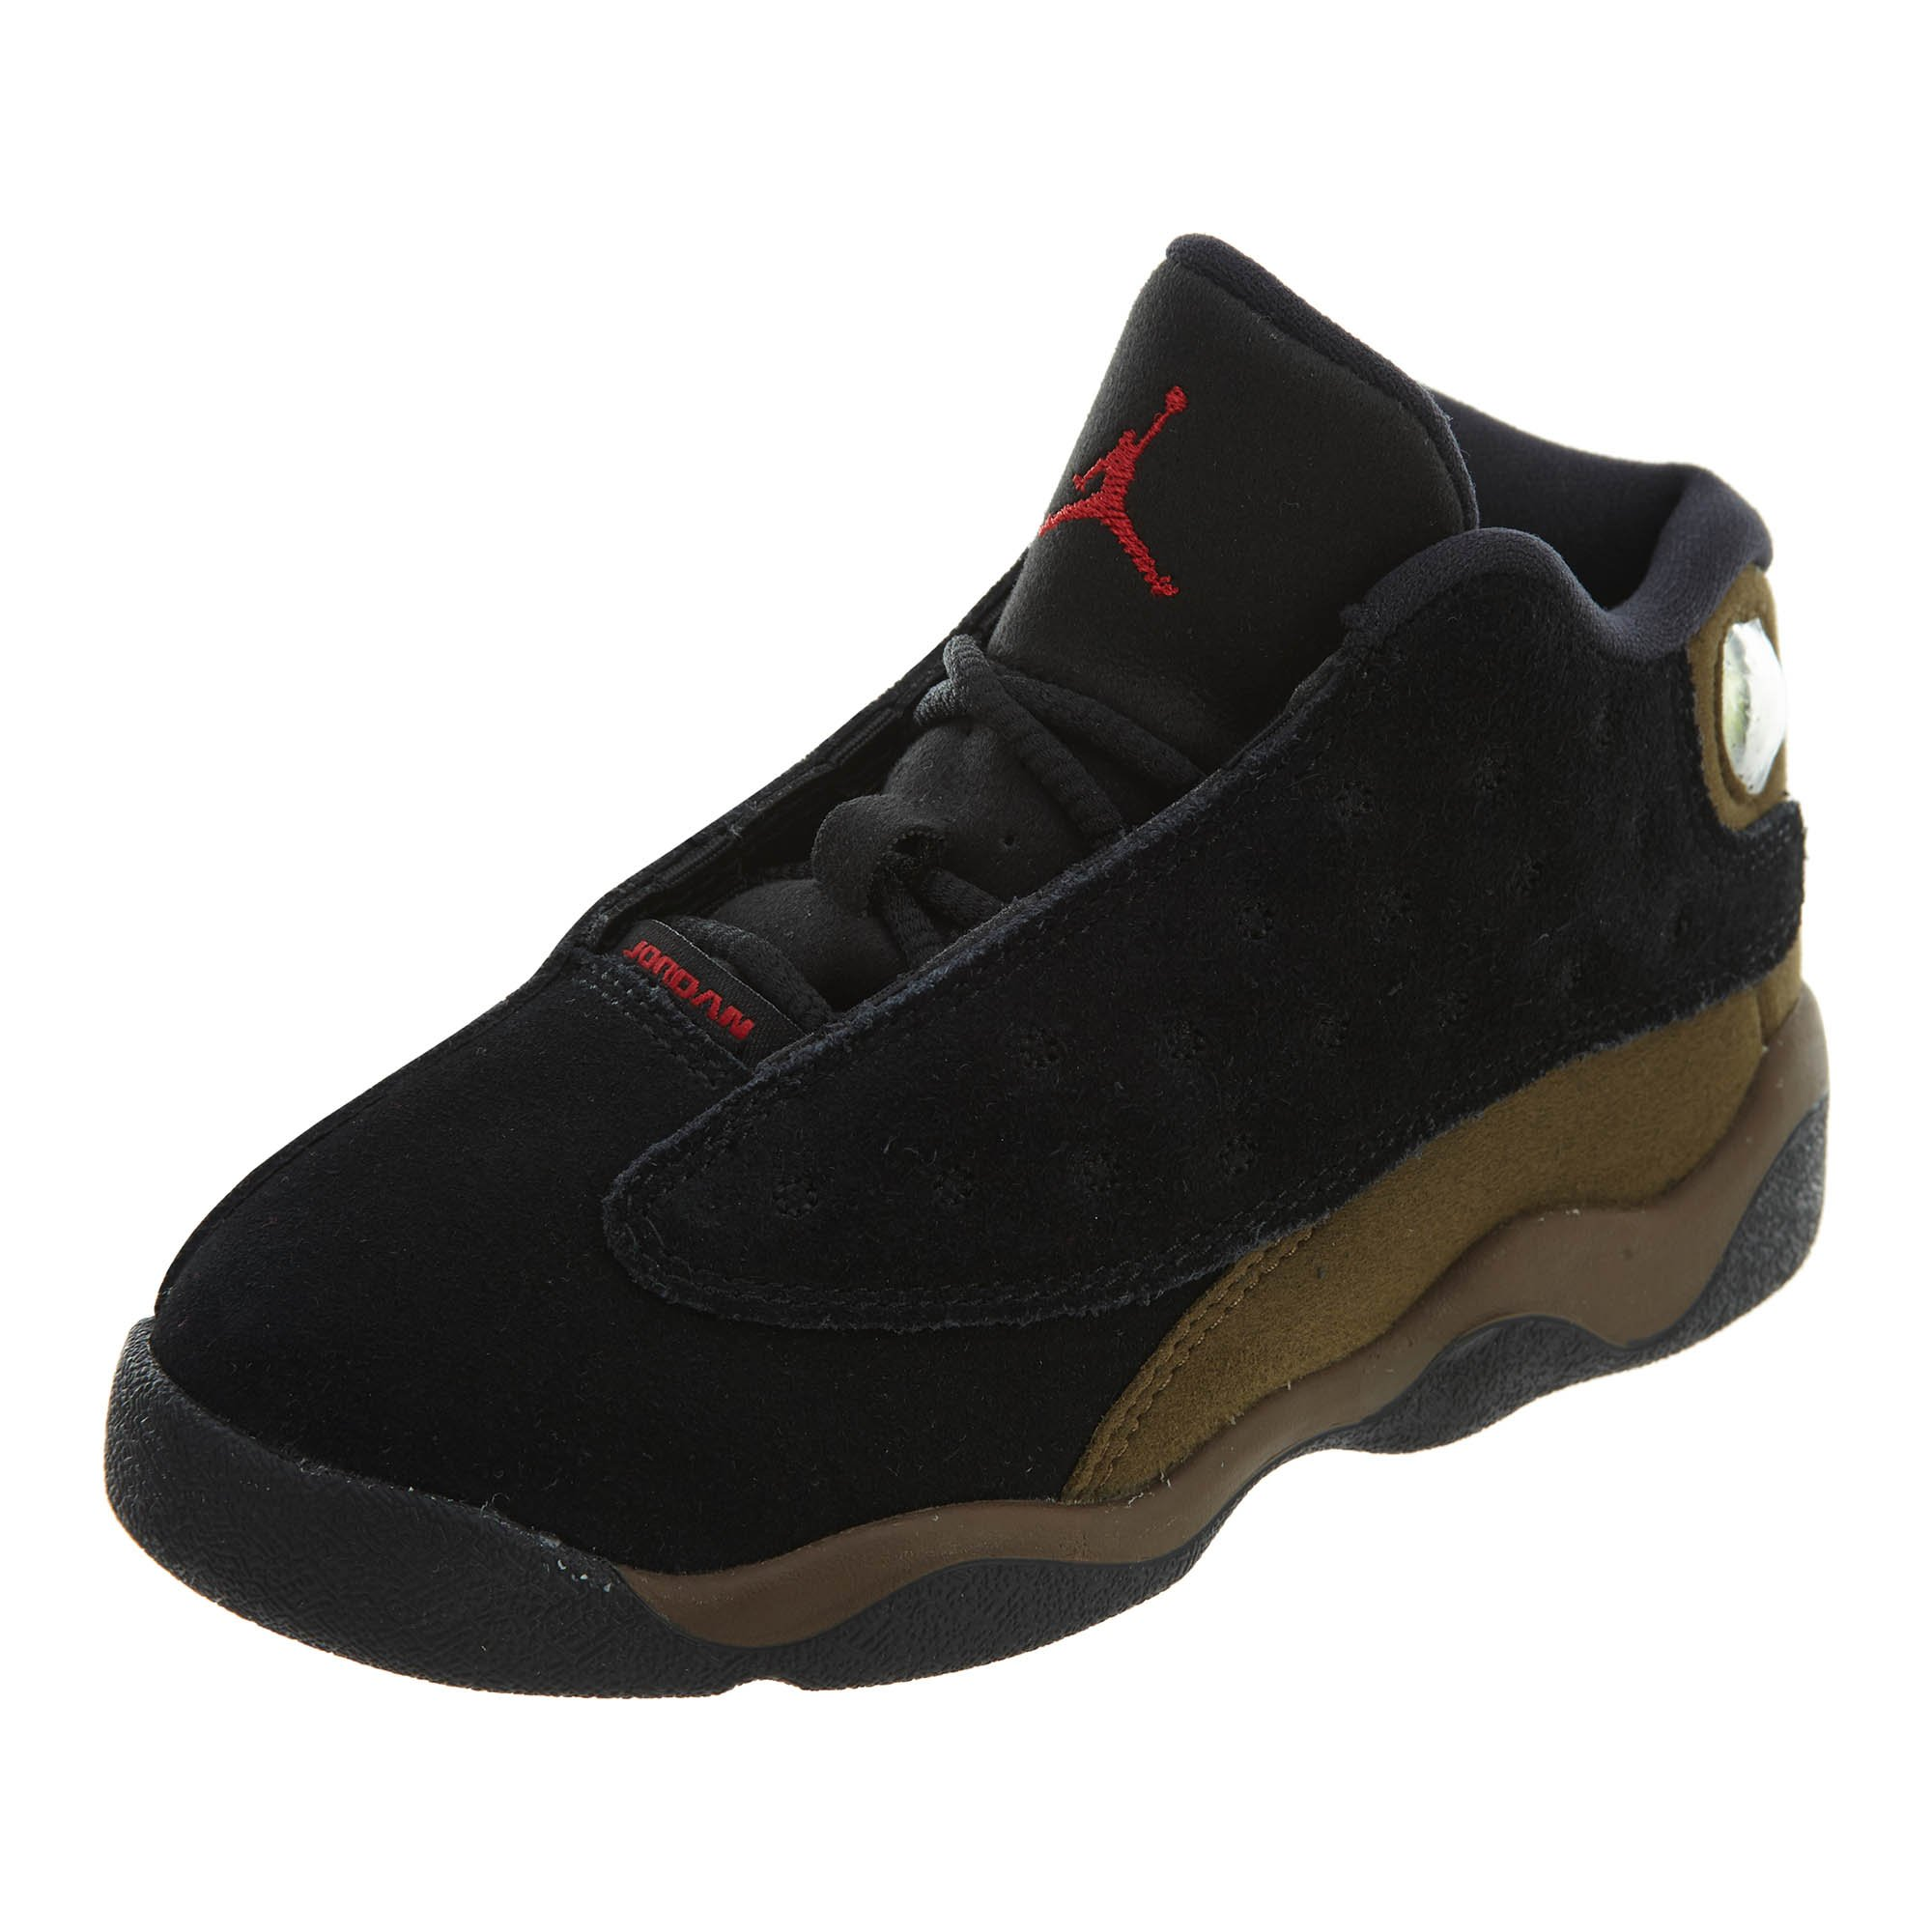 Jordan Retro 13'' Olive Black/Gym Red-Light Olive (Toddler) (9)